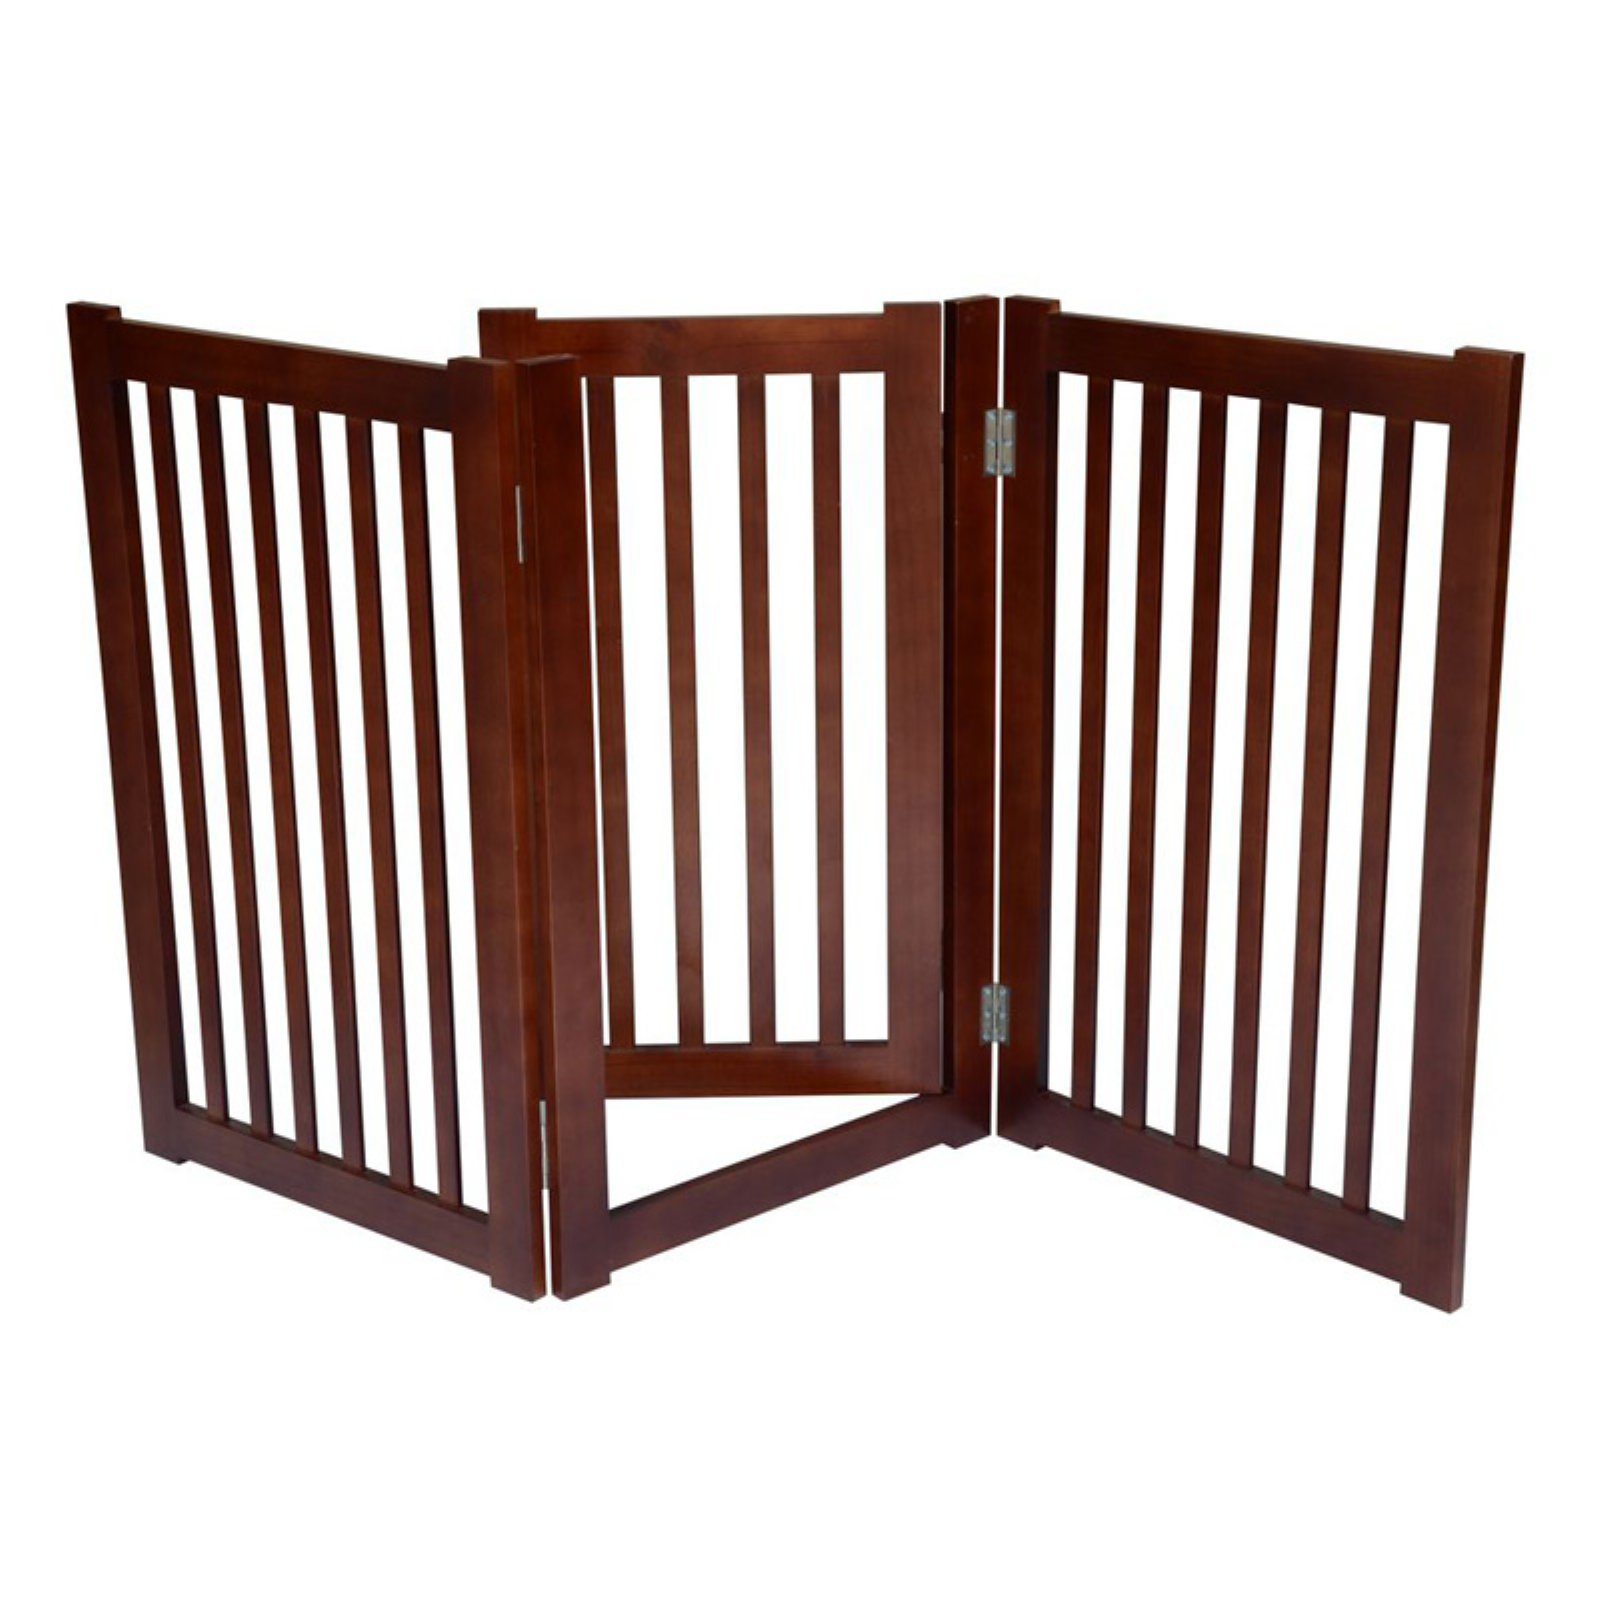 Merske Free Standing Pet Gate - Dark Walnut